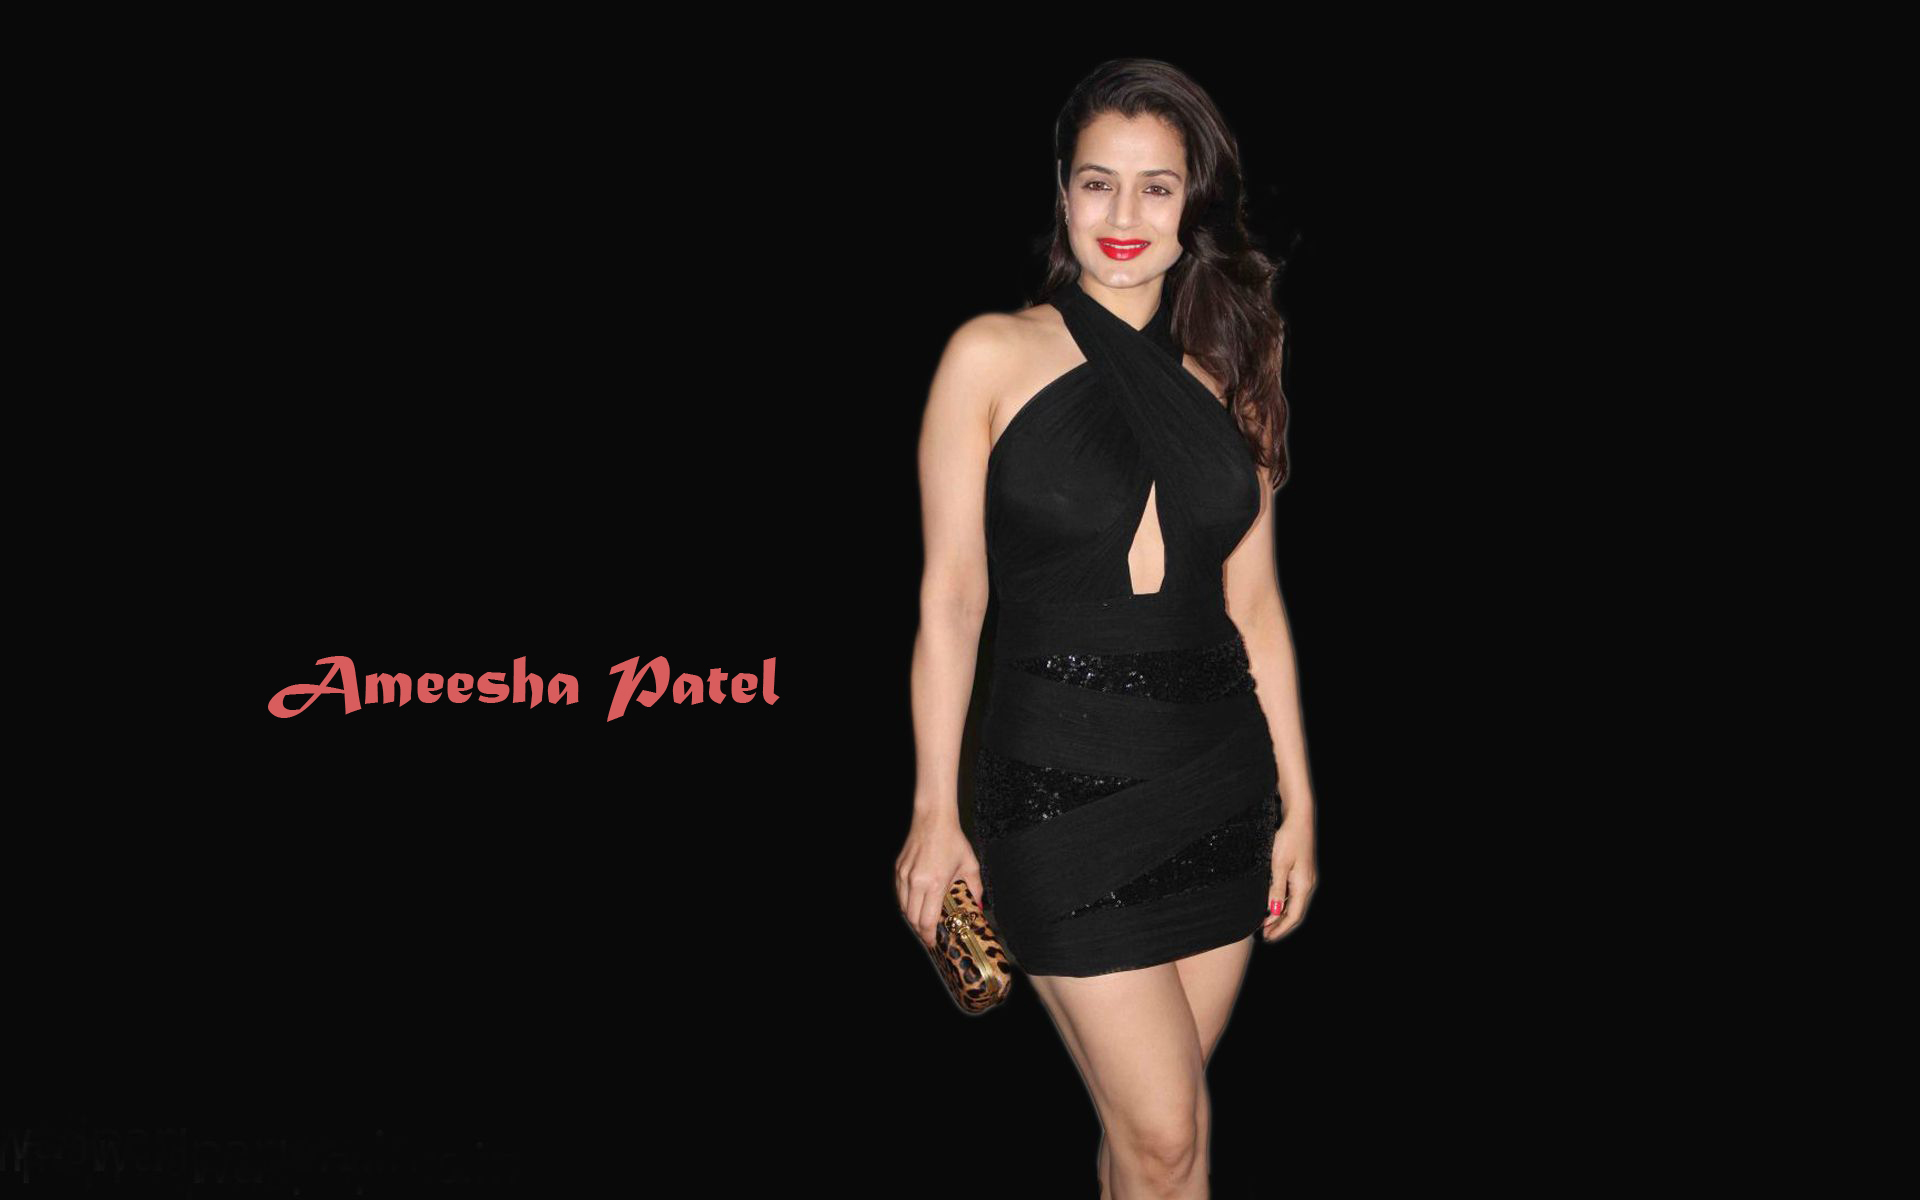 lovely ameesha patel cute desktop mobile background hd wallpaper free